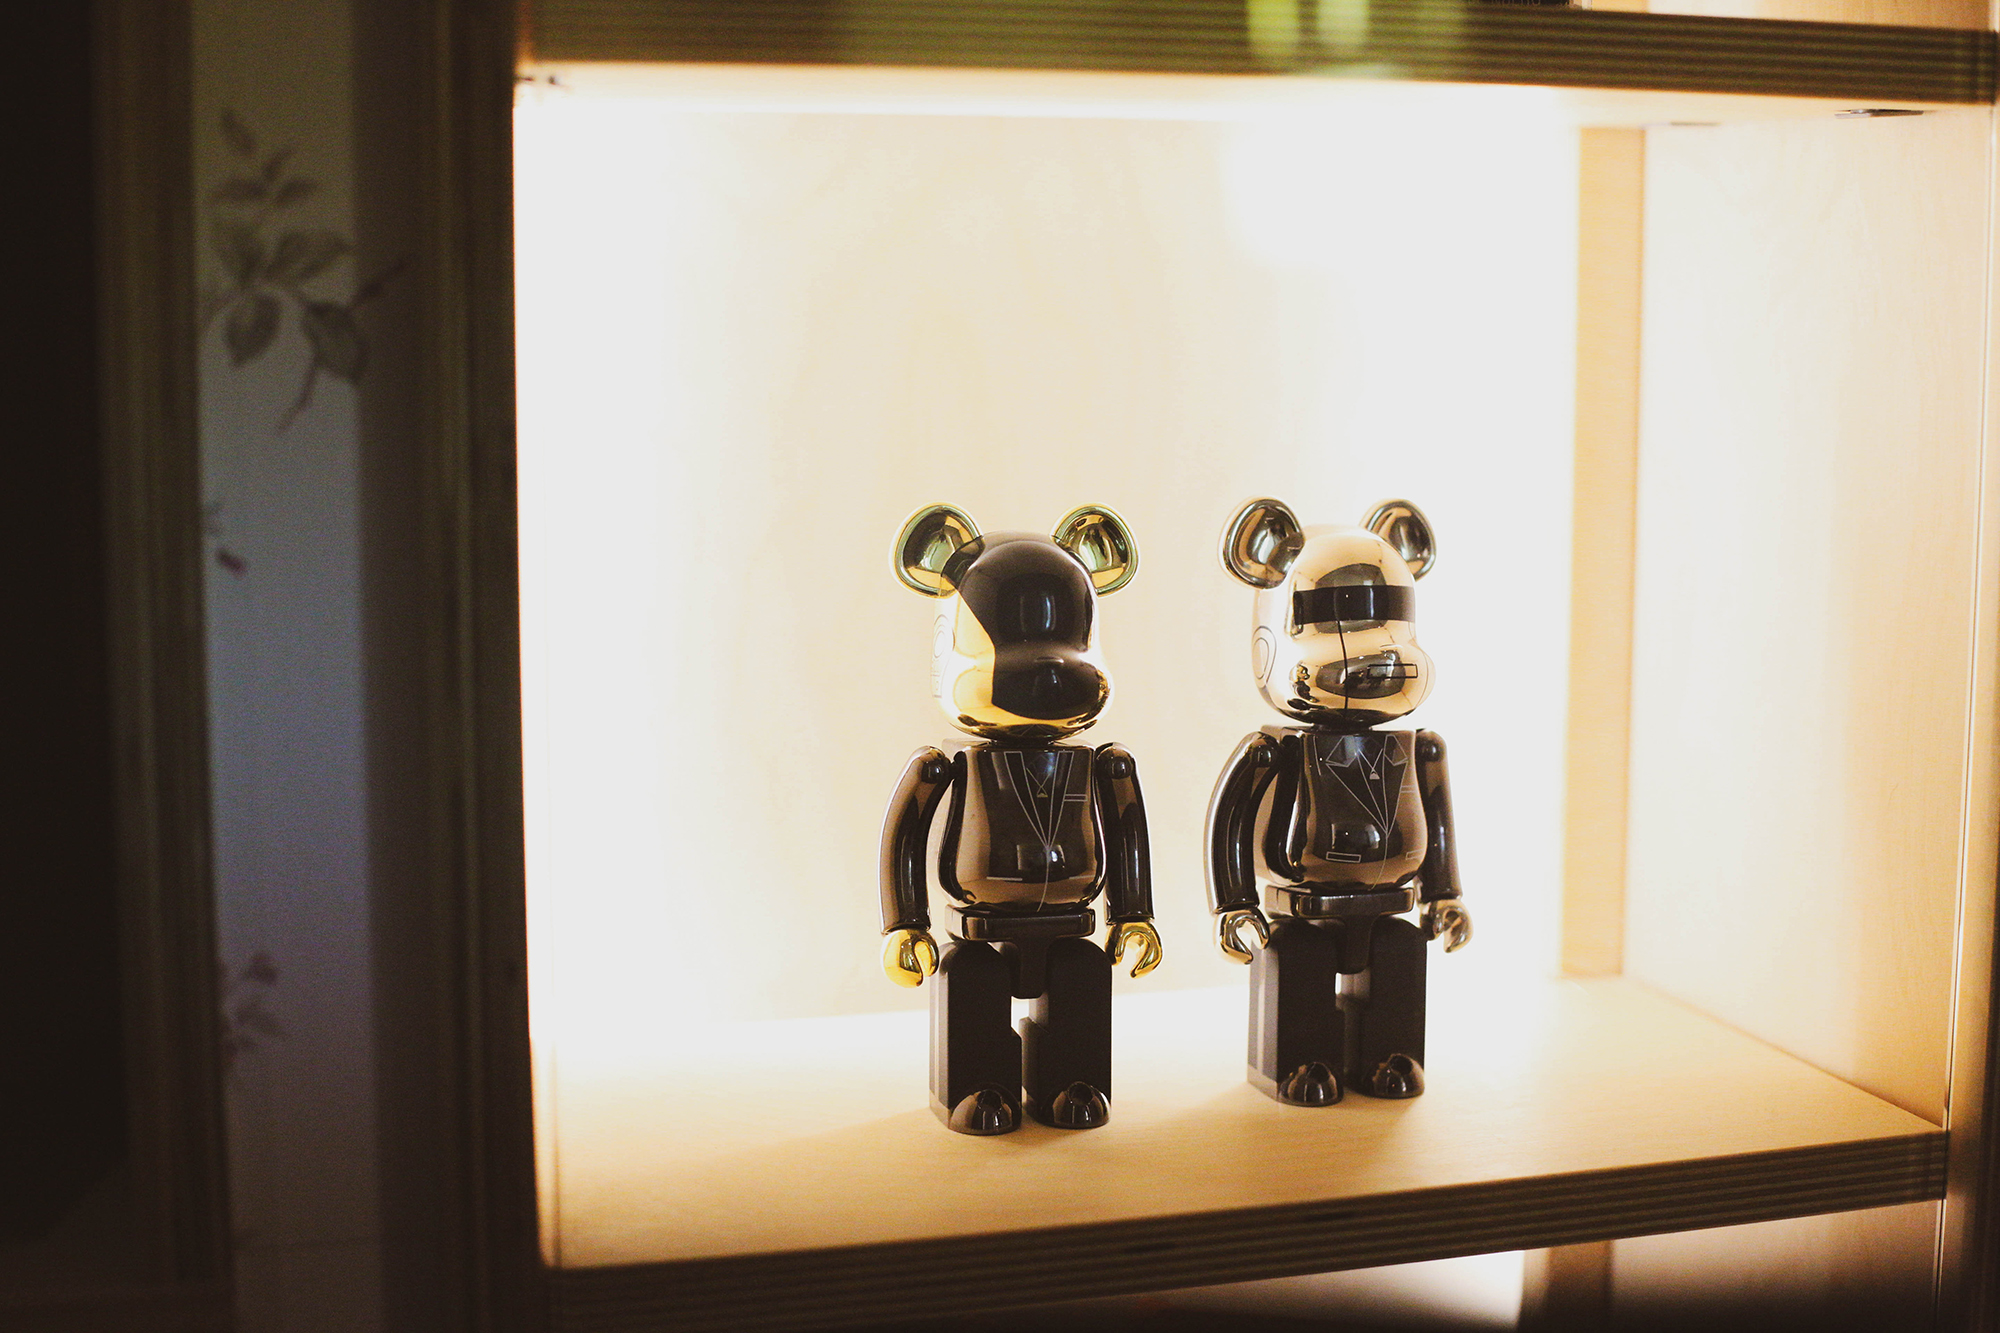 Hundy's version of MediCom Toy Inc's Bearbrick collectibles, mirroring the design elements featured at AnnaLena